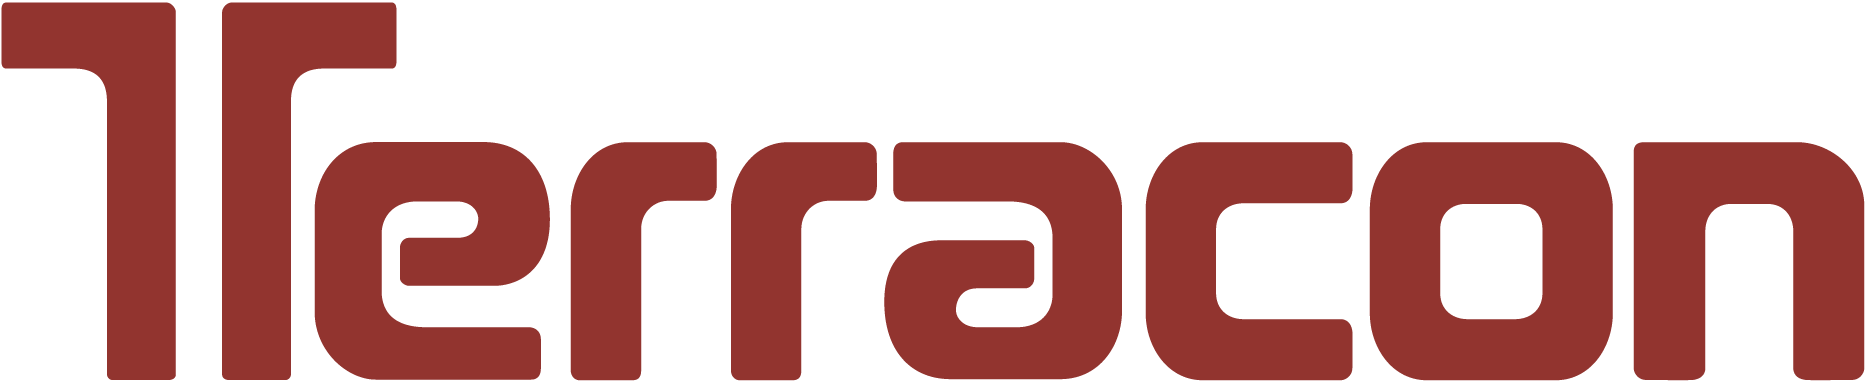 BEC - Terracon logo